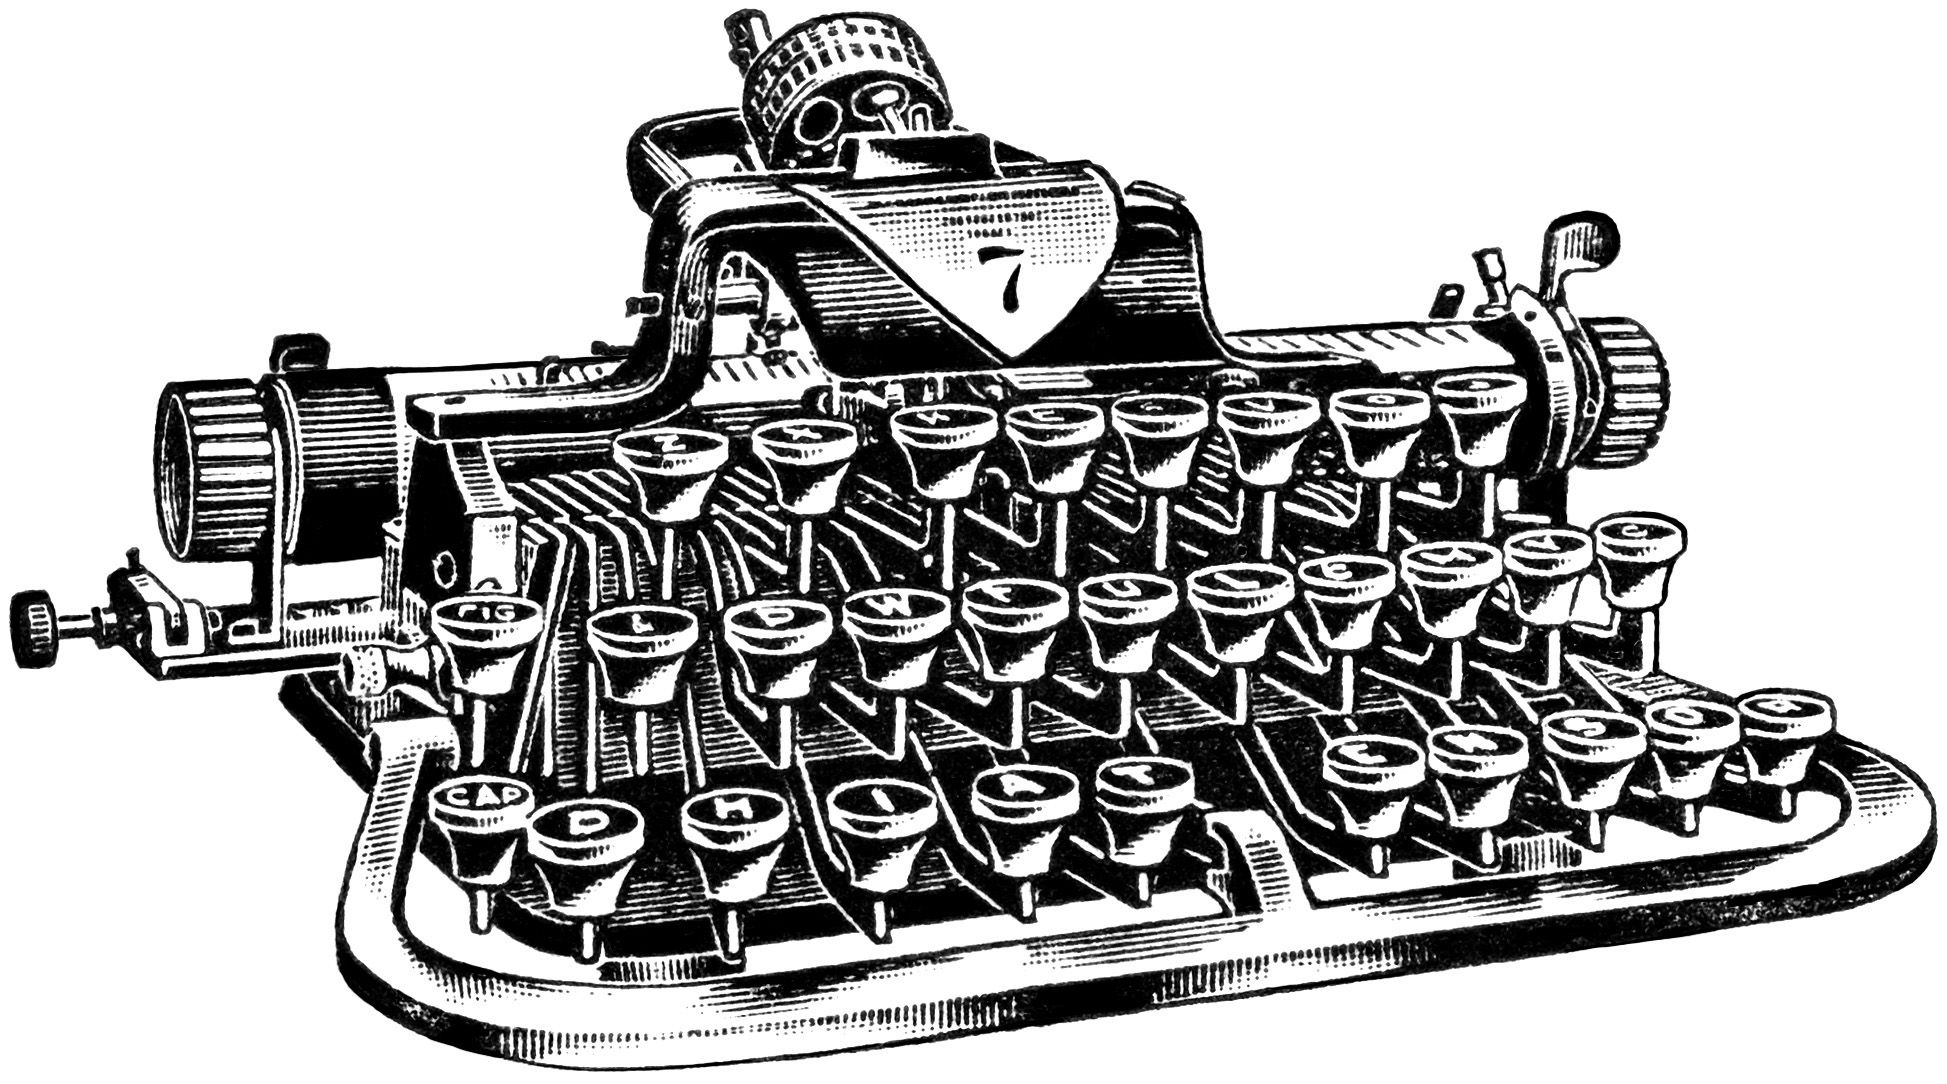 Vintage Clip Art - 3 Antique Typewriter -Vintage Clip Art - 3 Antique Typewriter Graphics - The Graphics Fairy for  RSVP? Description-5